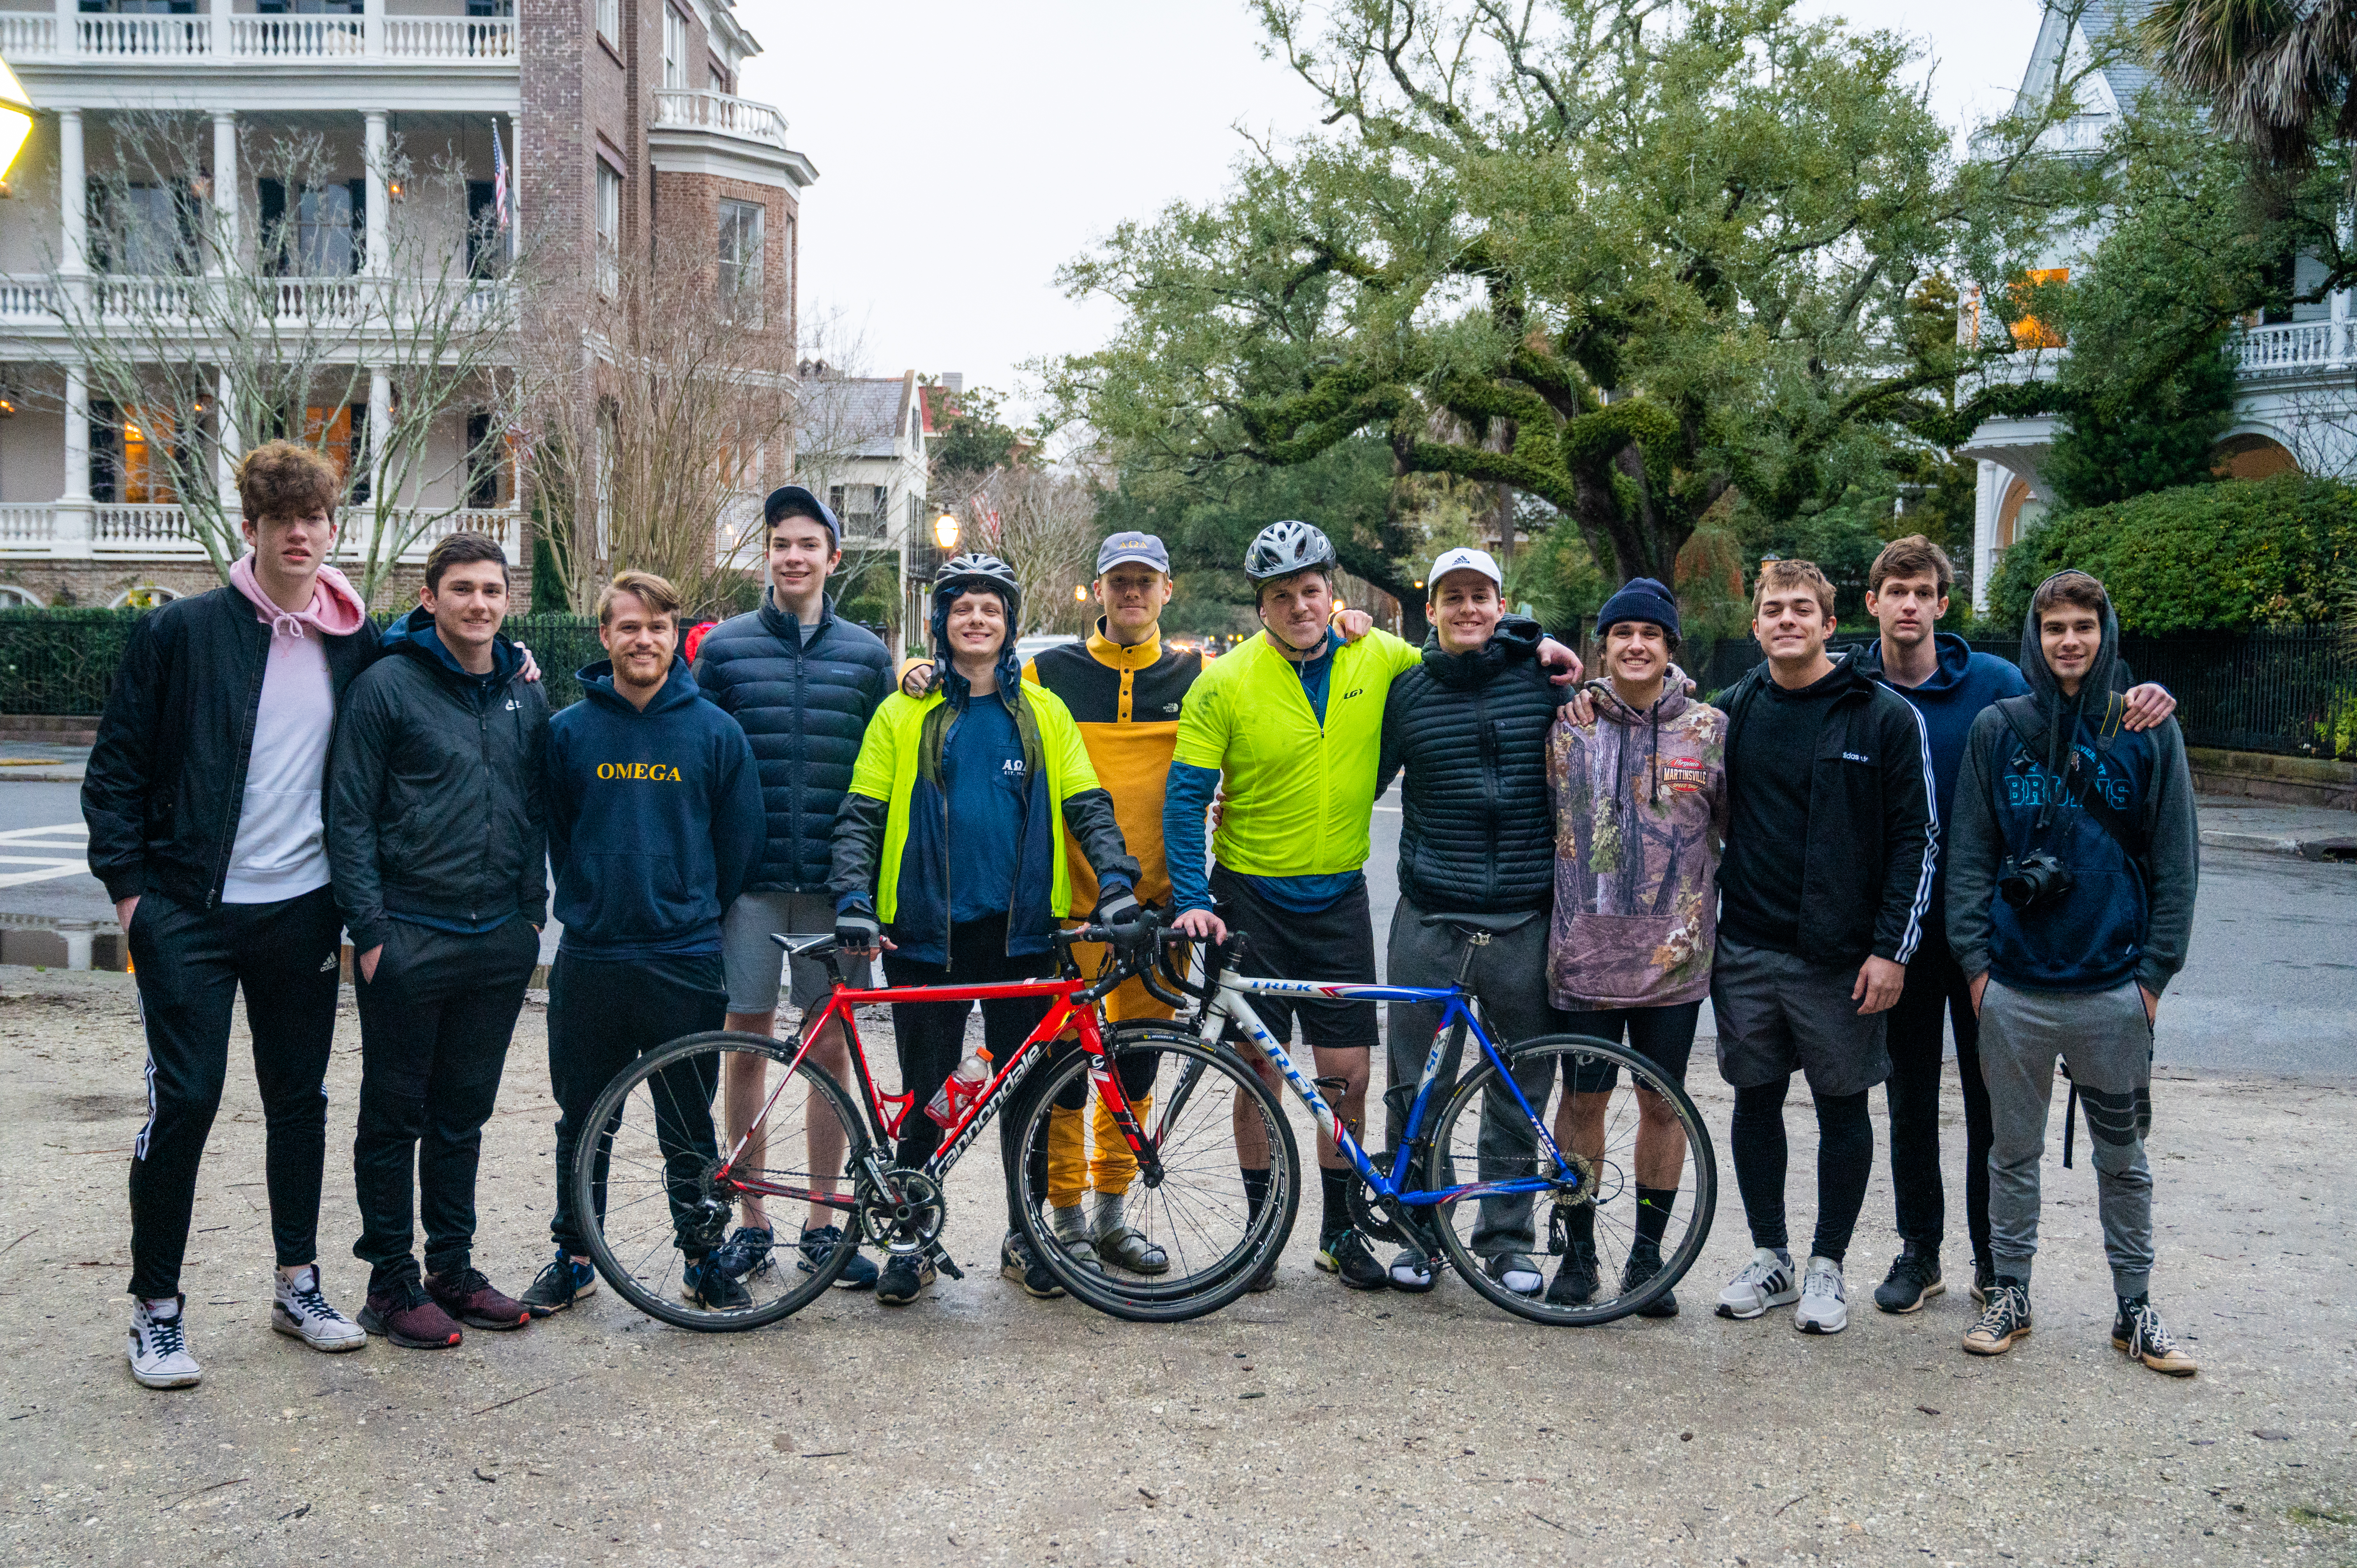 Alpha Omega Delta biked from Greenville to Charleston in their Tour de Omega (Photo by Mark Fuller Jr.)